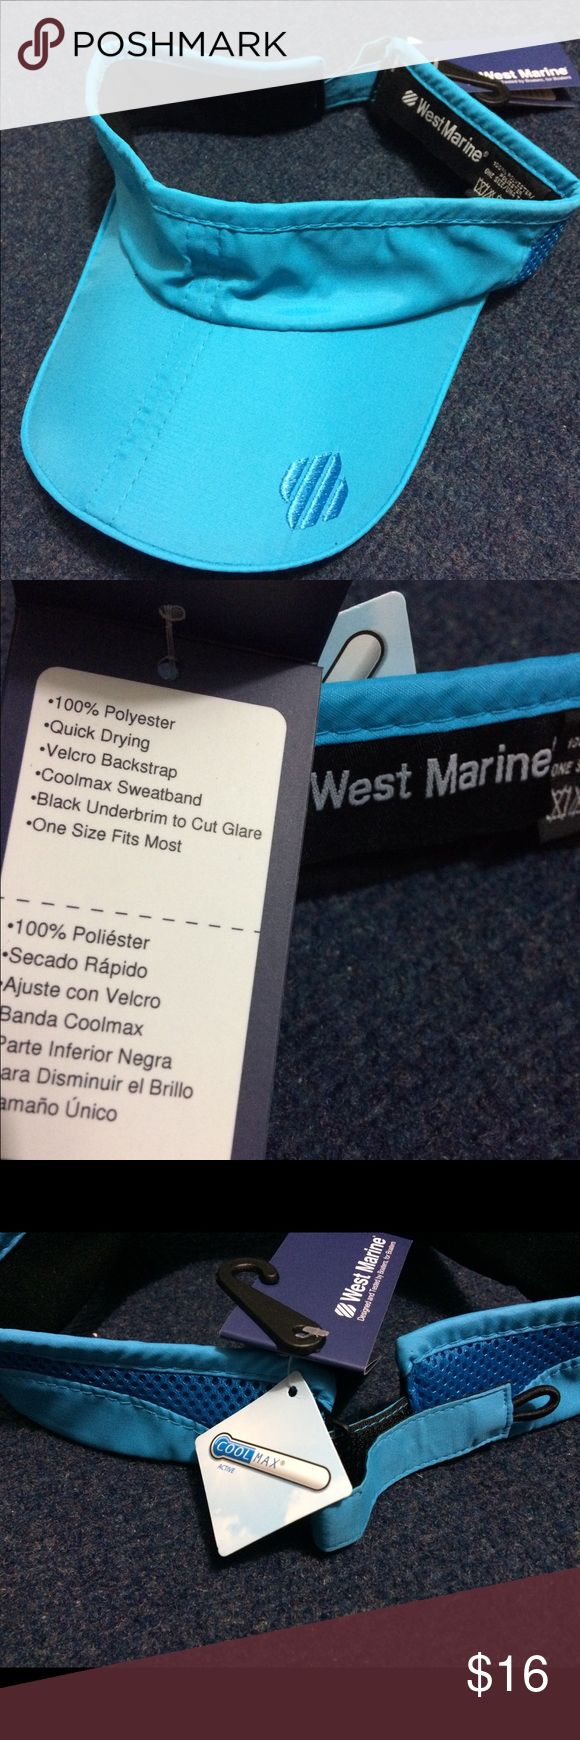 West Marine cool max active blue visor West Marine Visor new with tags, quick drying, Velcro back strap, coolmax sweatband, black underbrim to cut glare, one size fits most Other